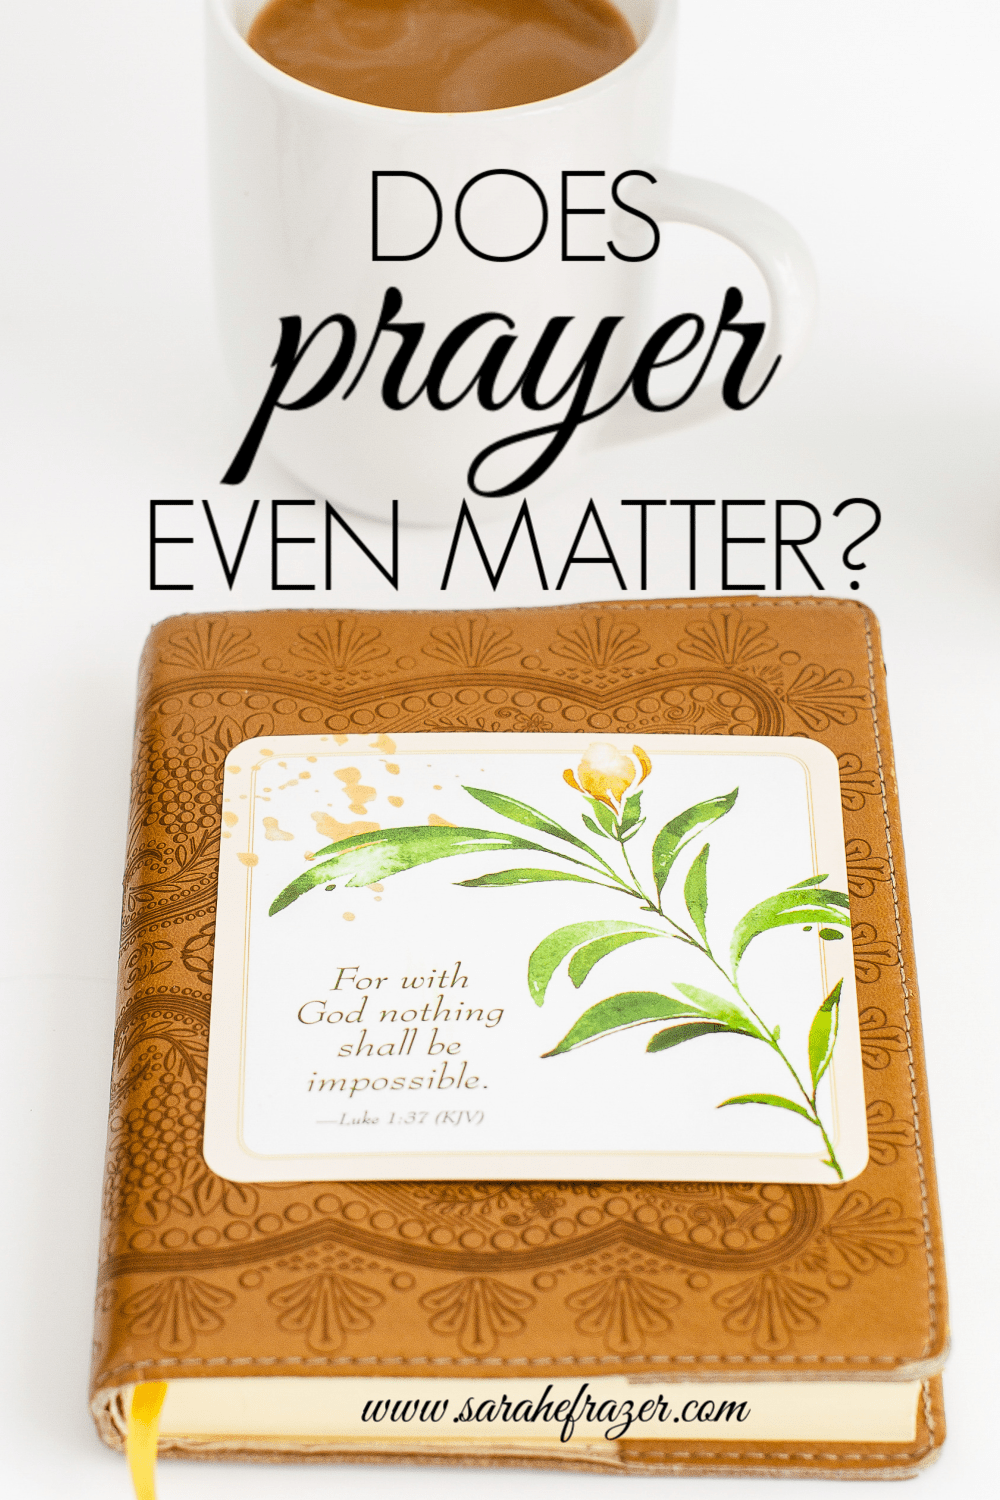 Does Prayer Even Matter?